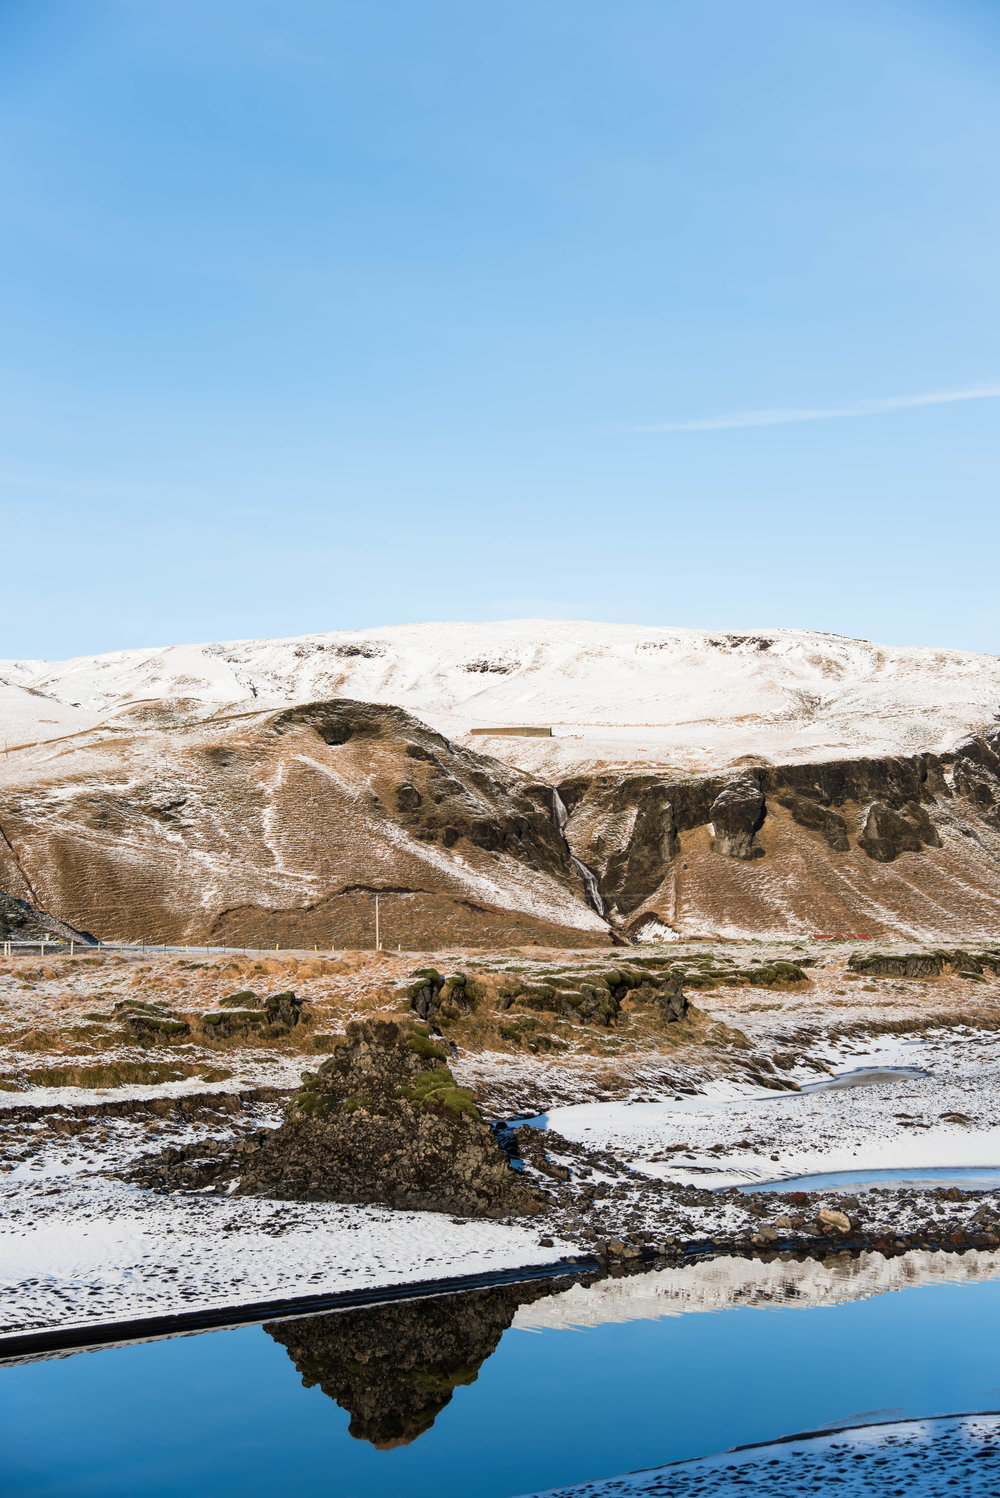 ROSE & IVY Journal Escape to Iceland | Fjaðrárgljúfur Canyon